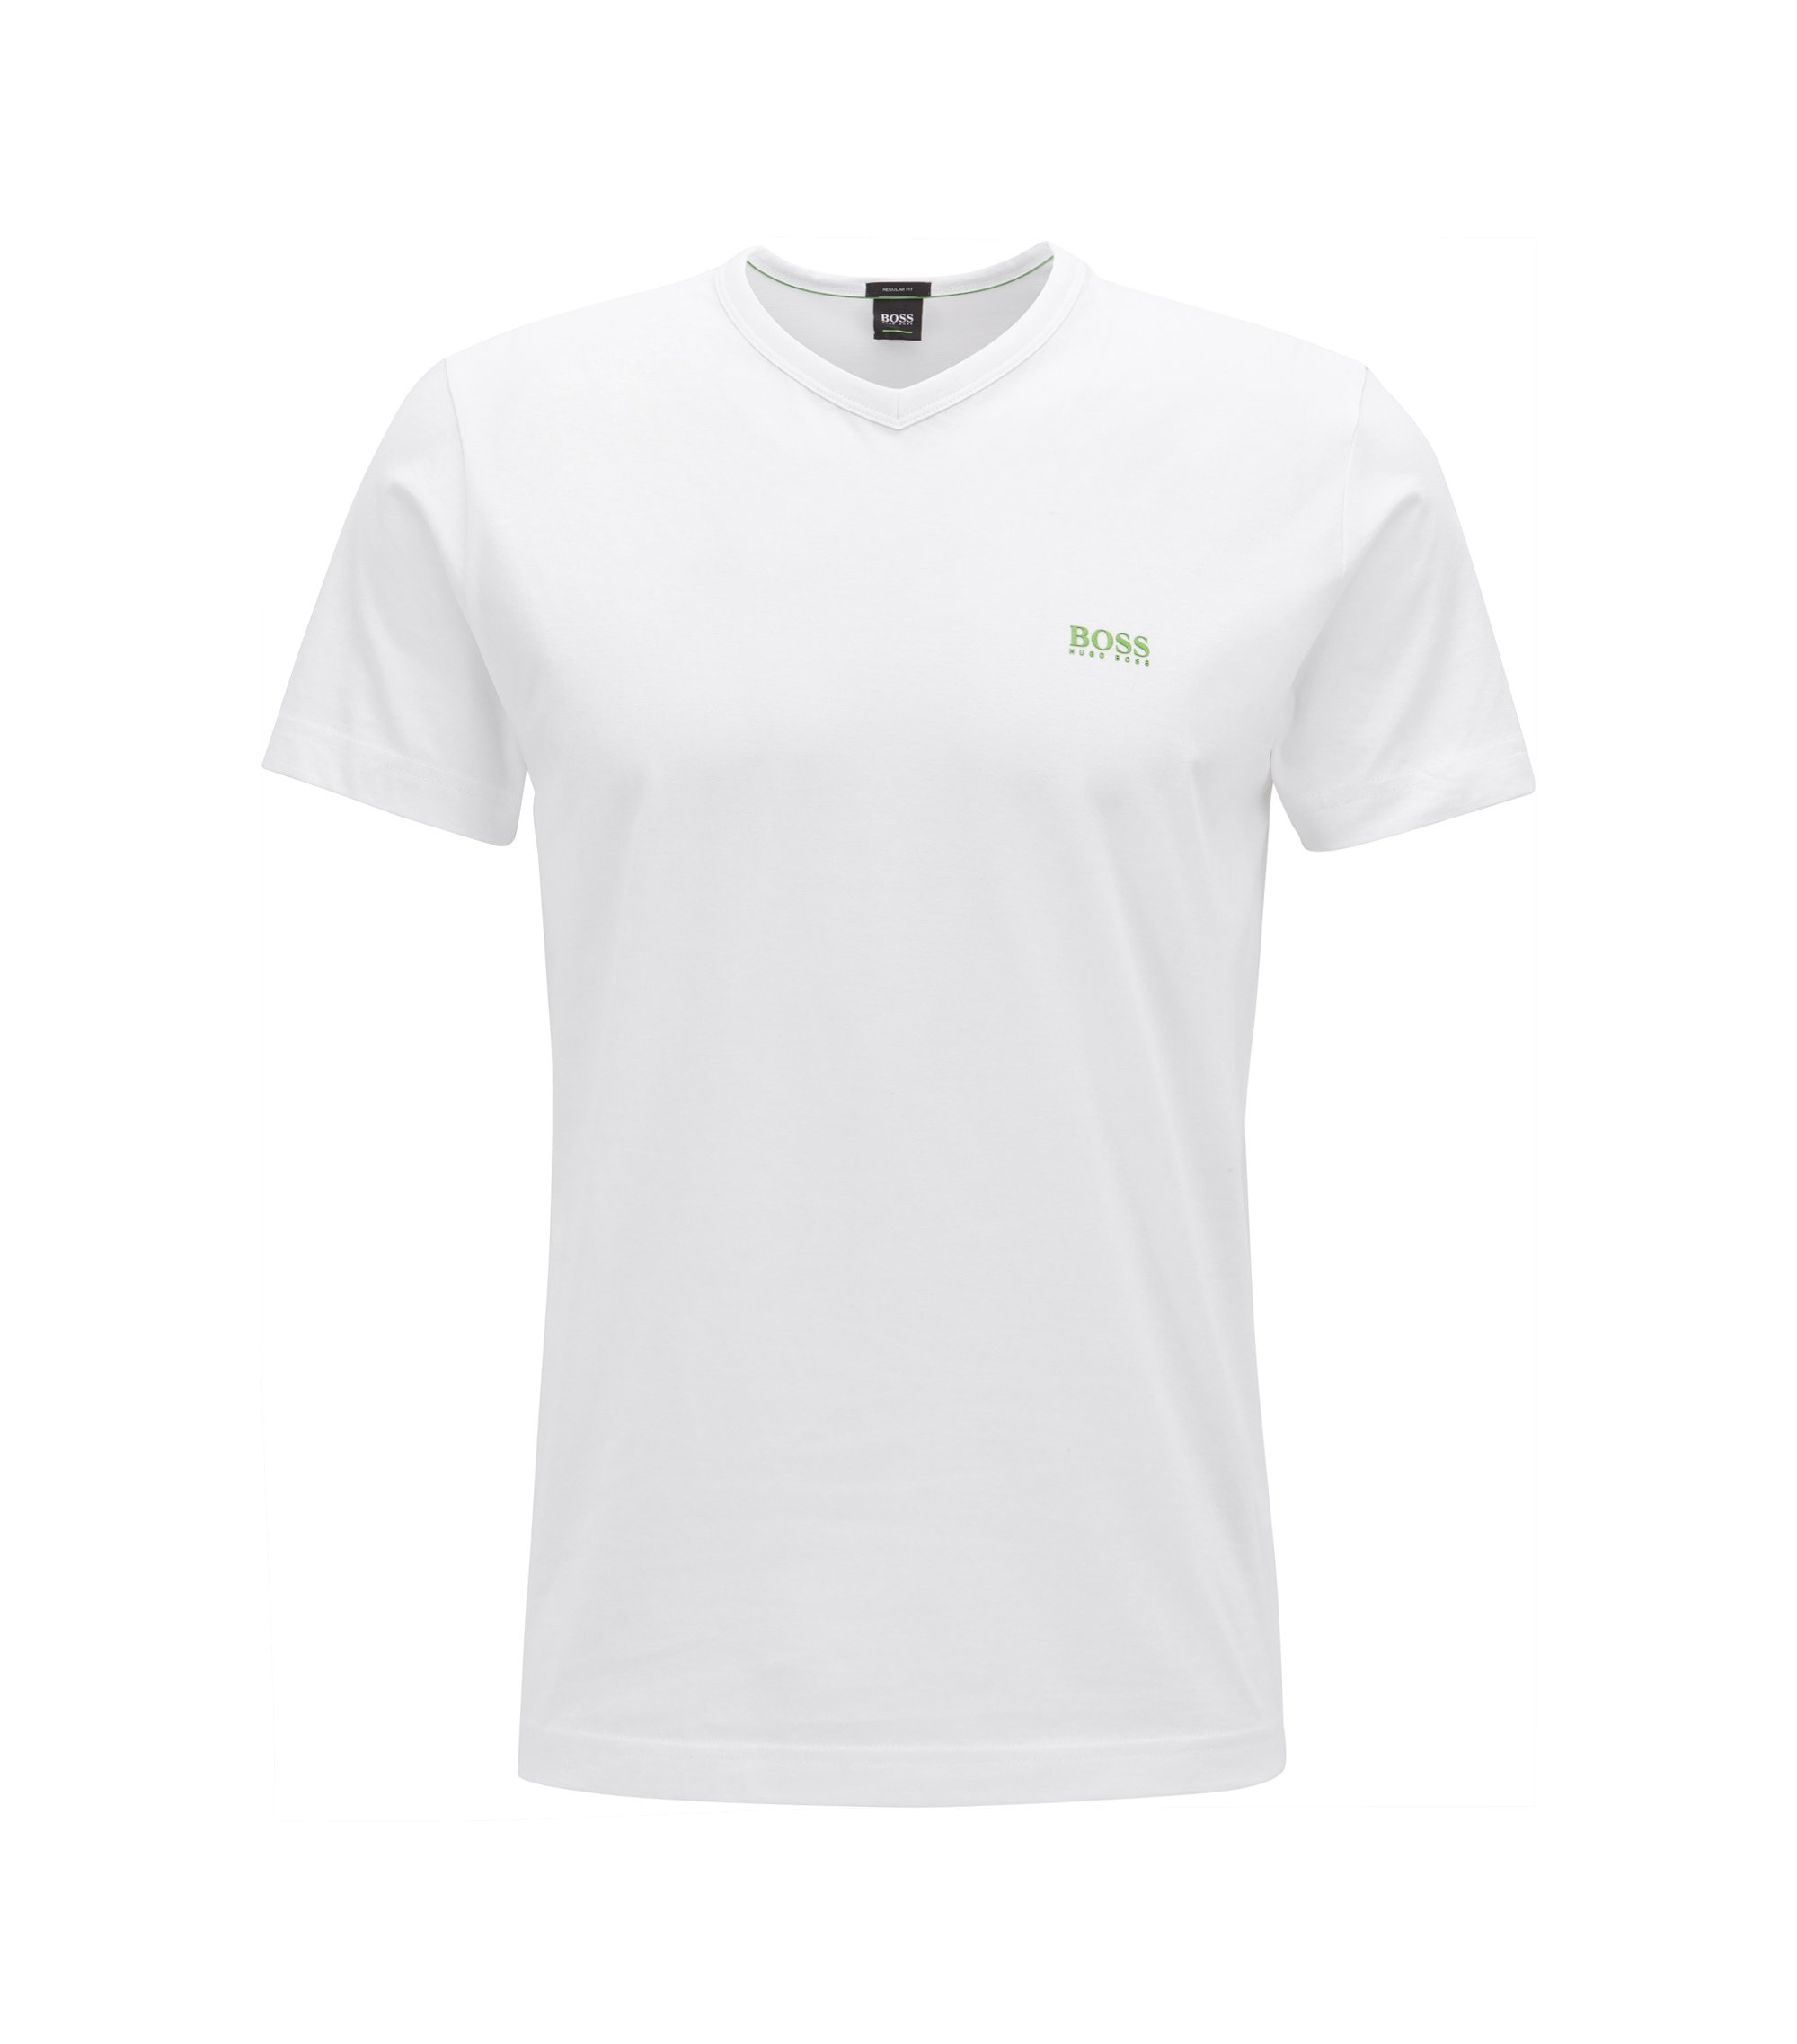 Cotton V-Neck T-Shirt | Teevn, White